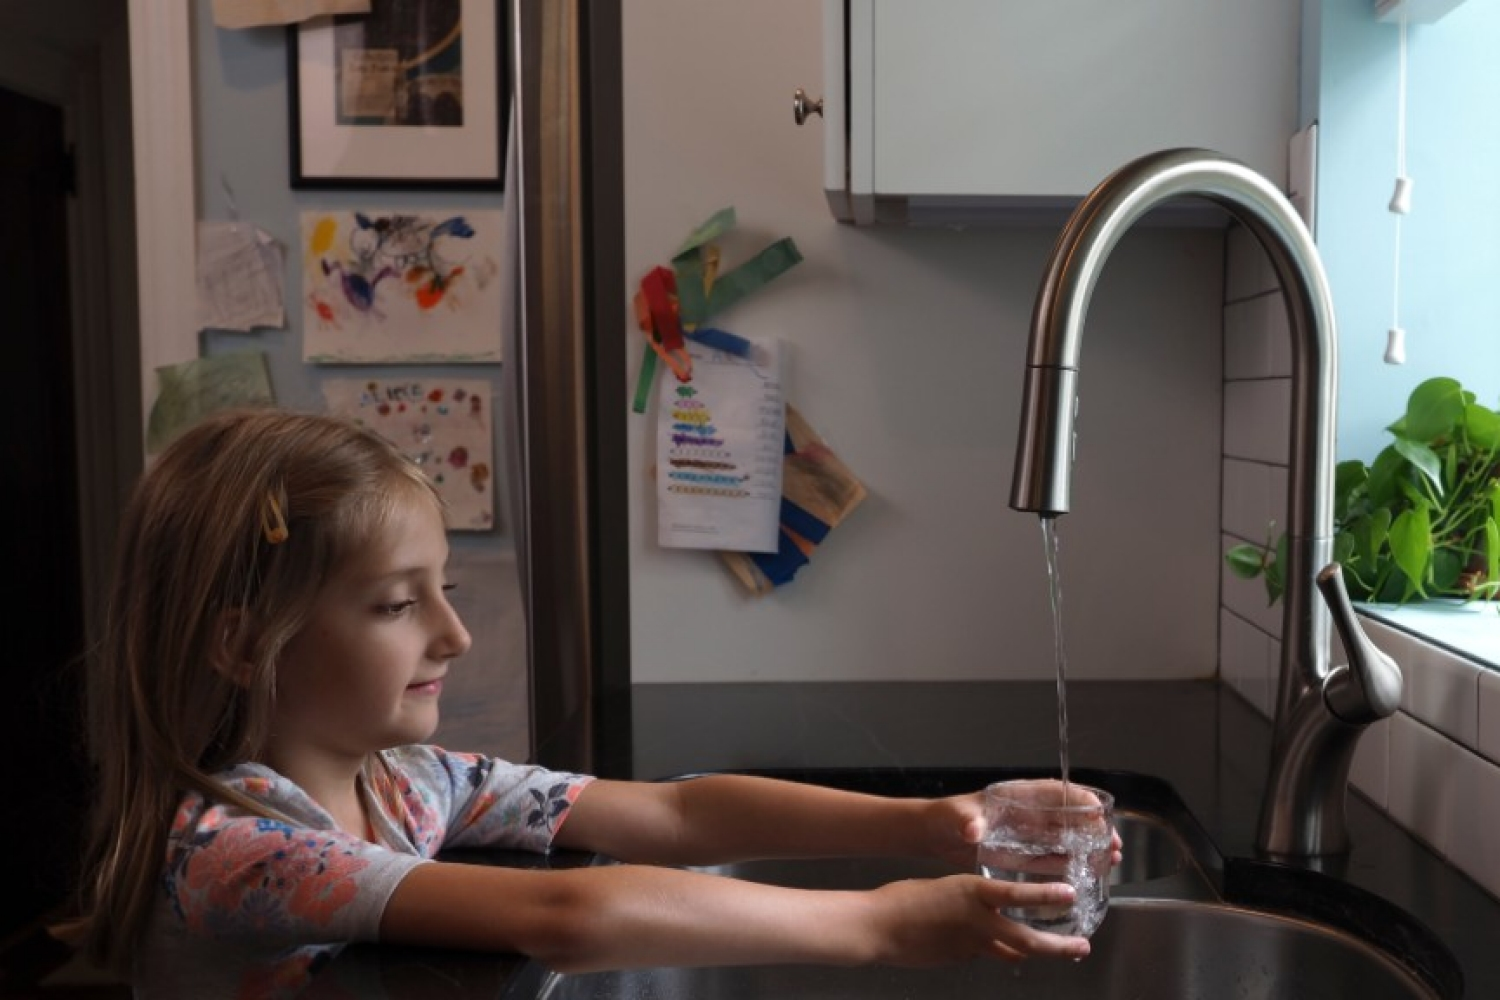 A young girl pours a glass of water from a tap